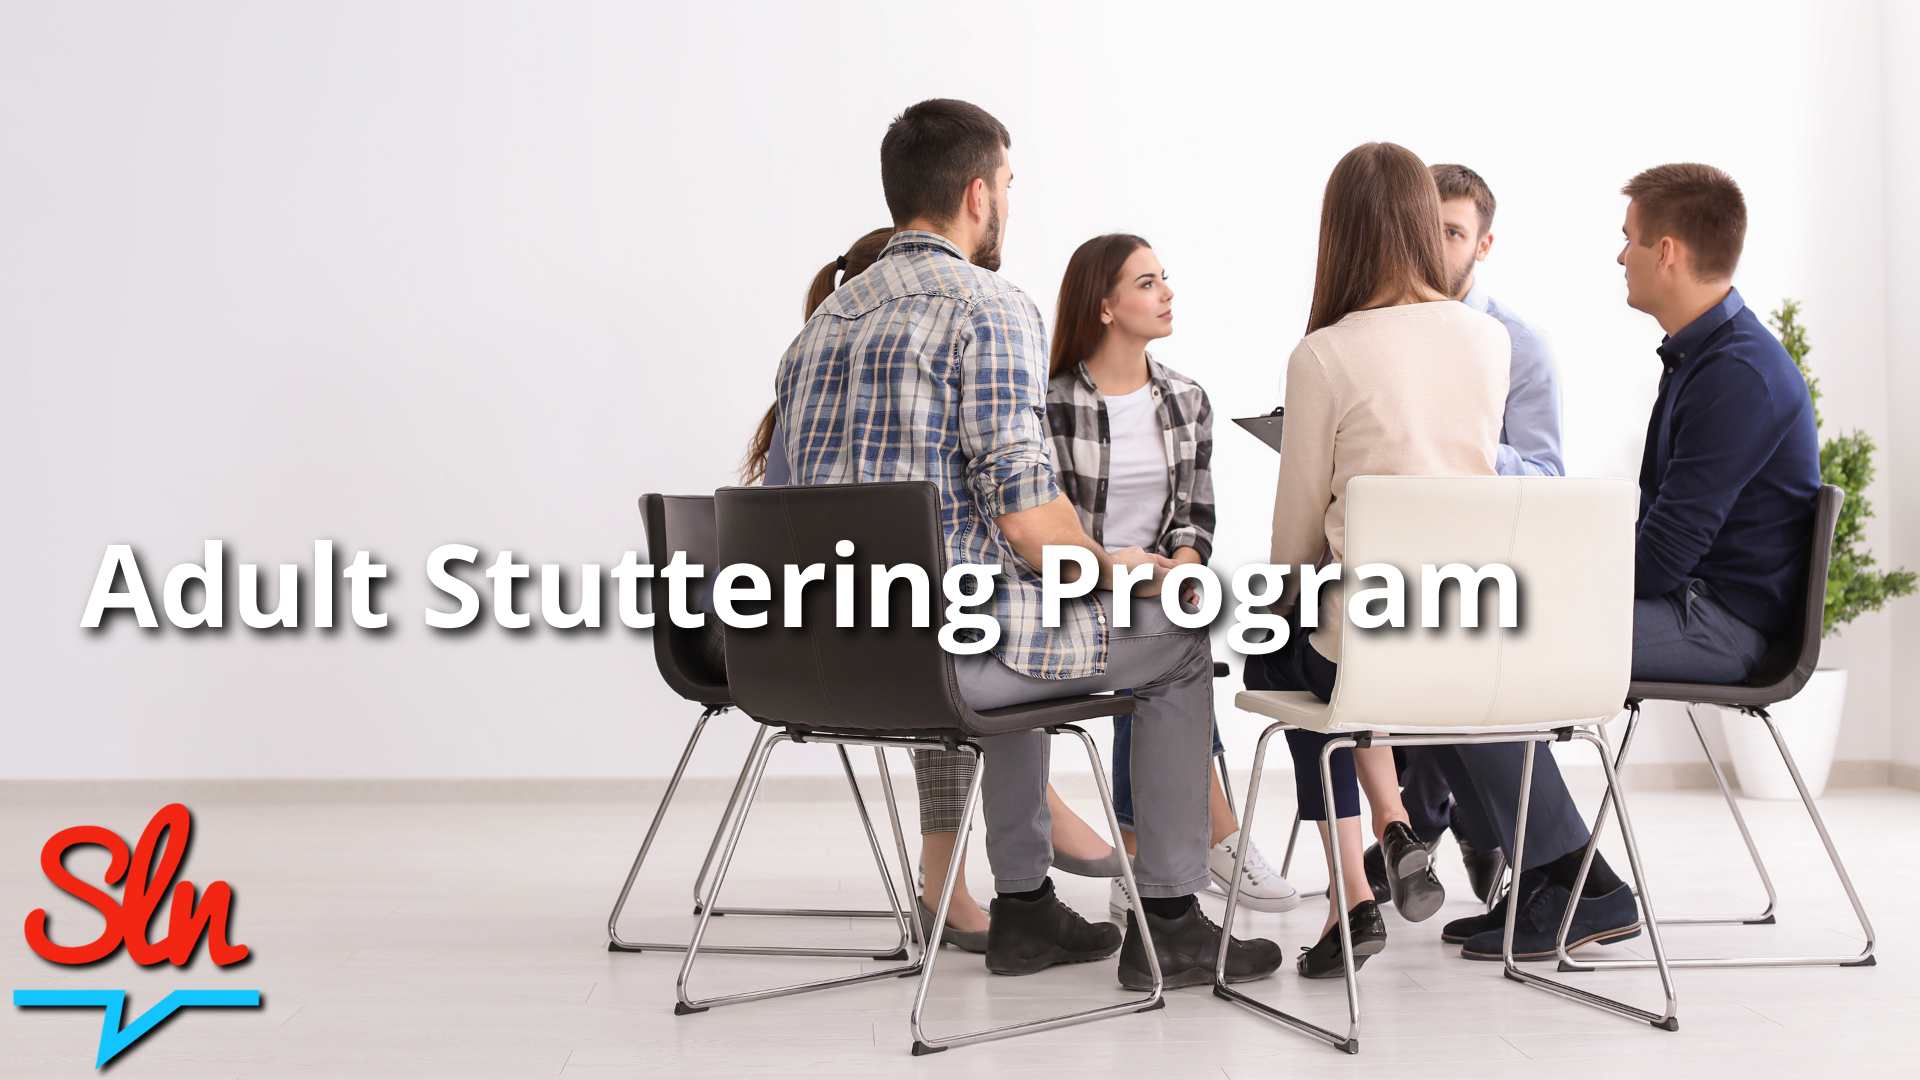 Adult Stuttering Group